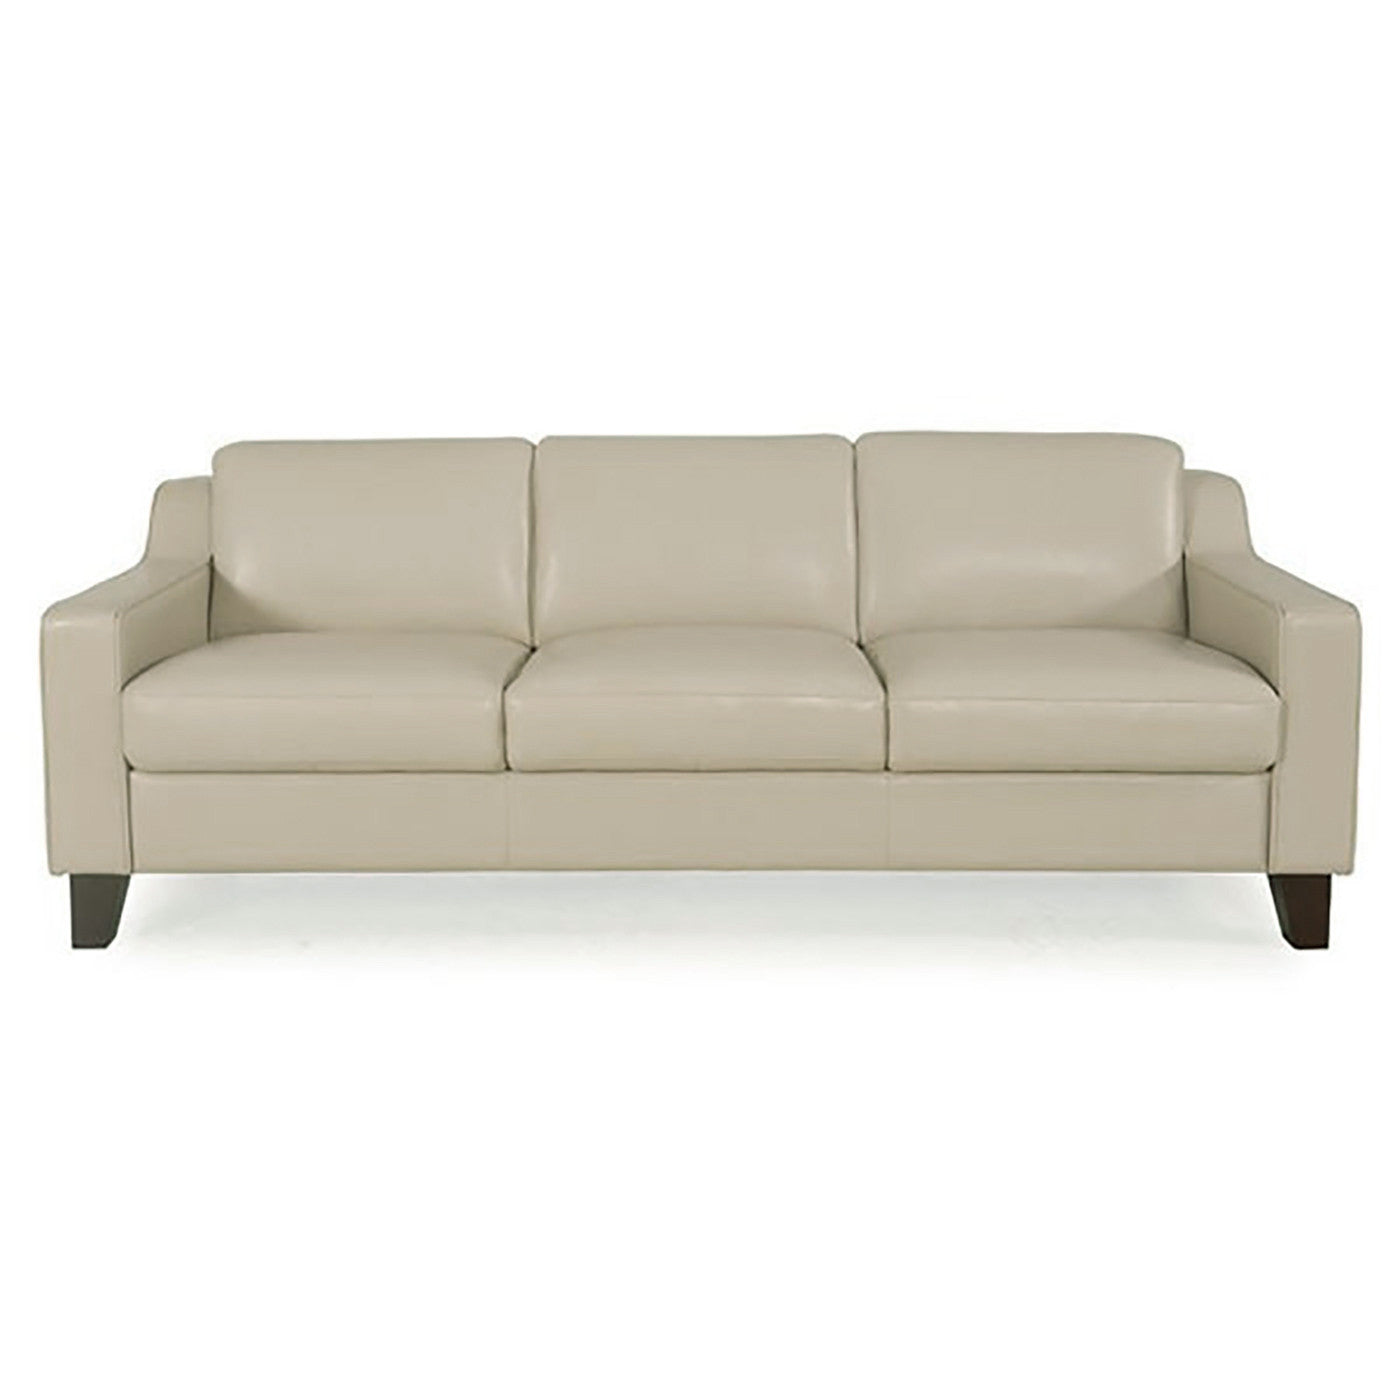 Barber Leather Sofa TAN – Apt2B